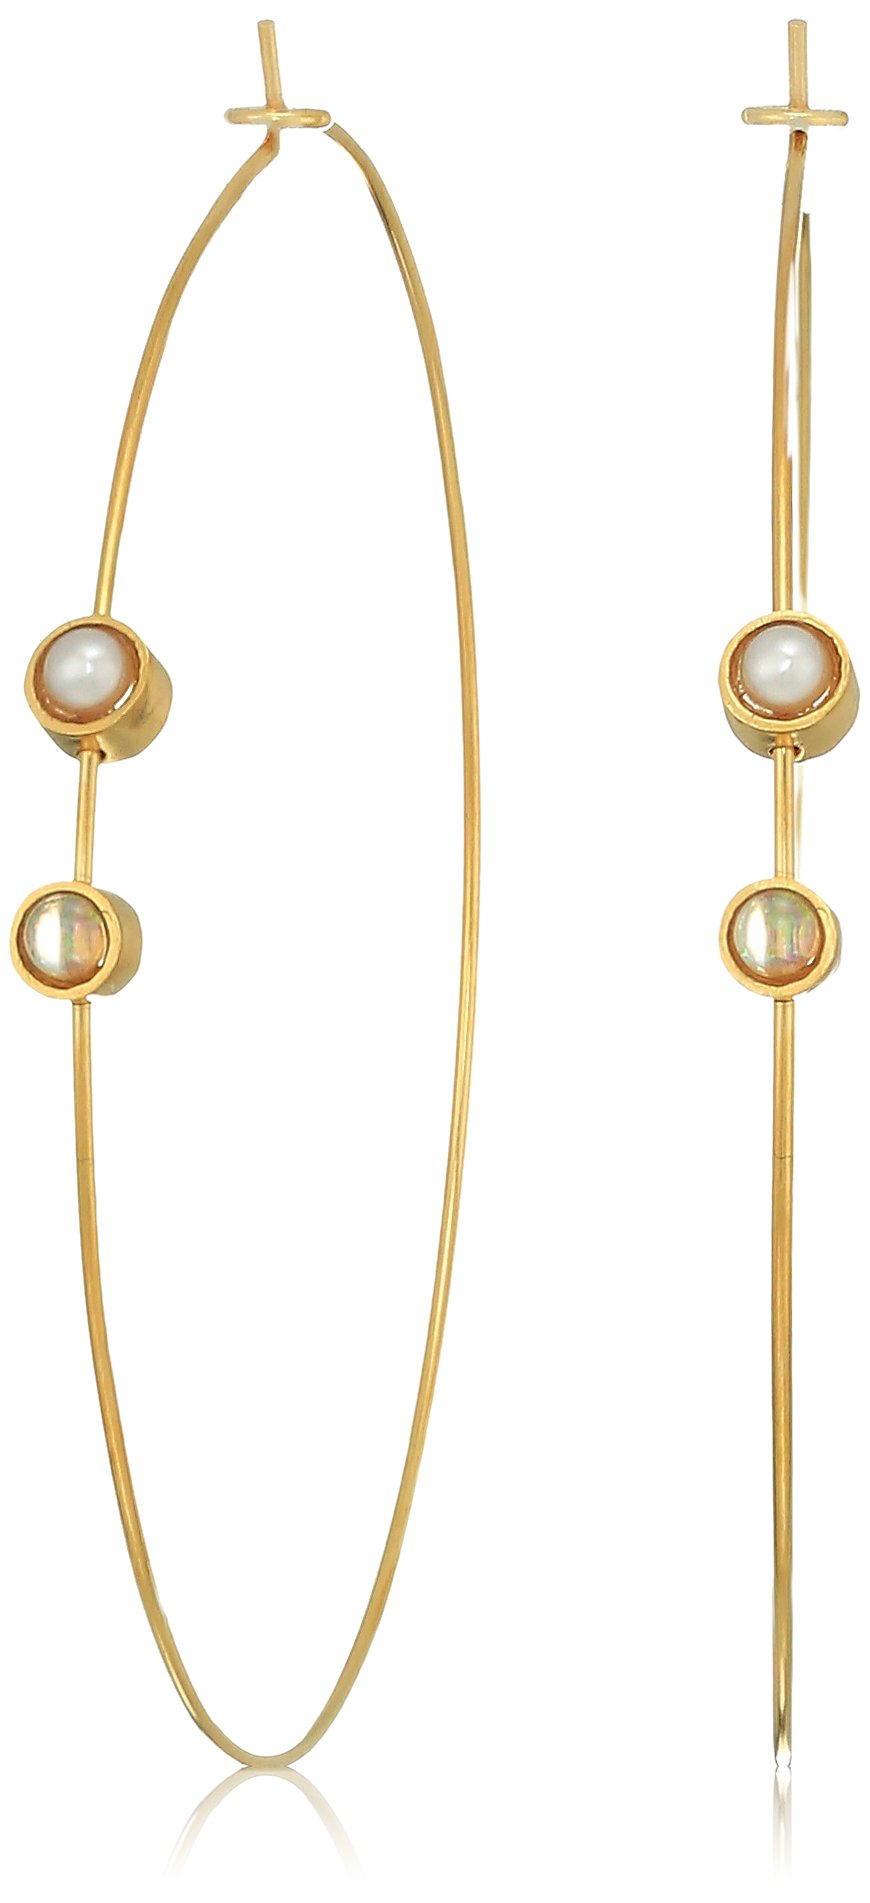 Dogeared Playing By Ear Wing Lip Card Pearl And Opalescence Bezel On Large Hoop Earrings, Gold